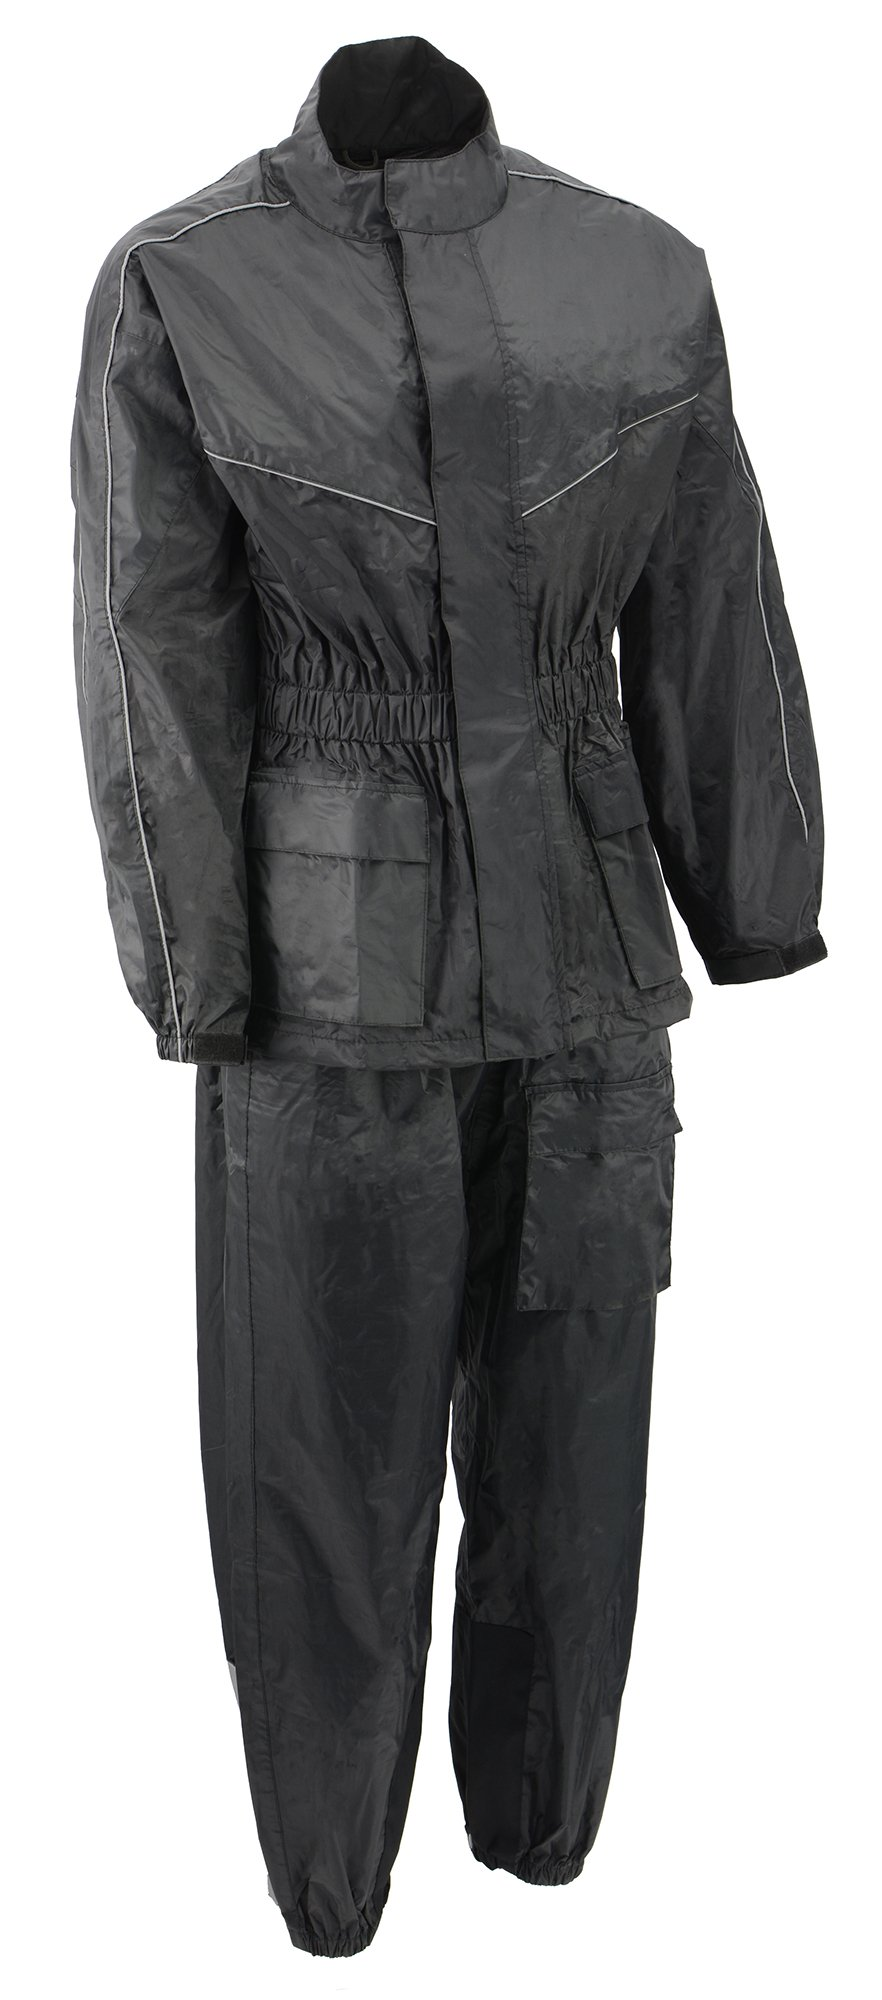 M-BOSS MOTORCYCLE APPAREL-BOS29601-BLK/BLK-Unisex's two piece motorcycle rain gear.-BLK/BLK-X-LARGE